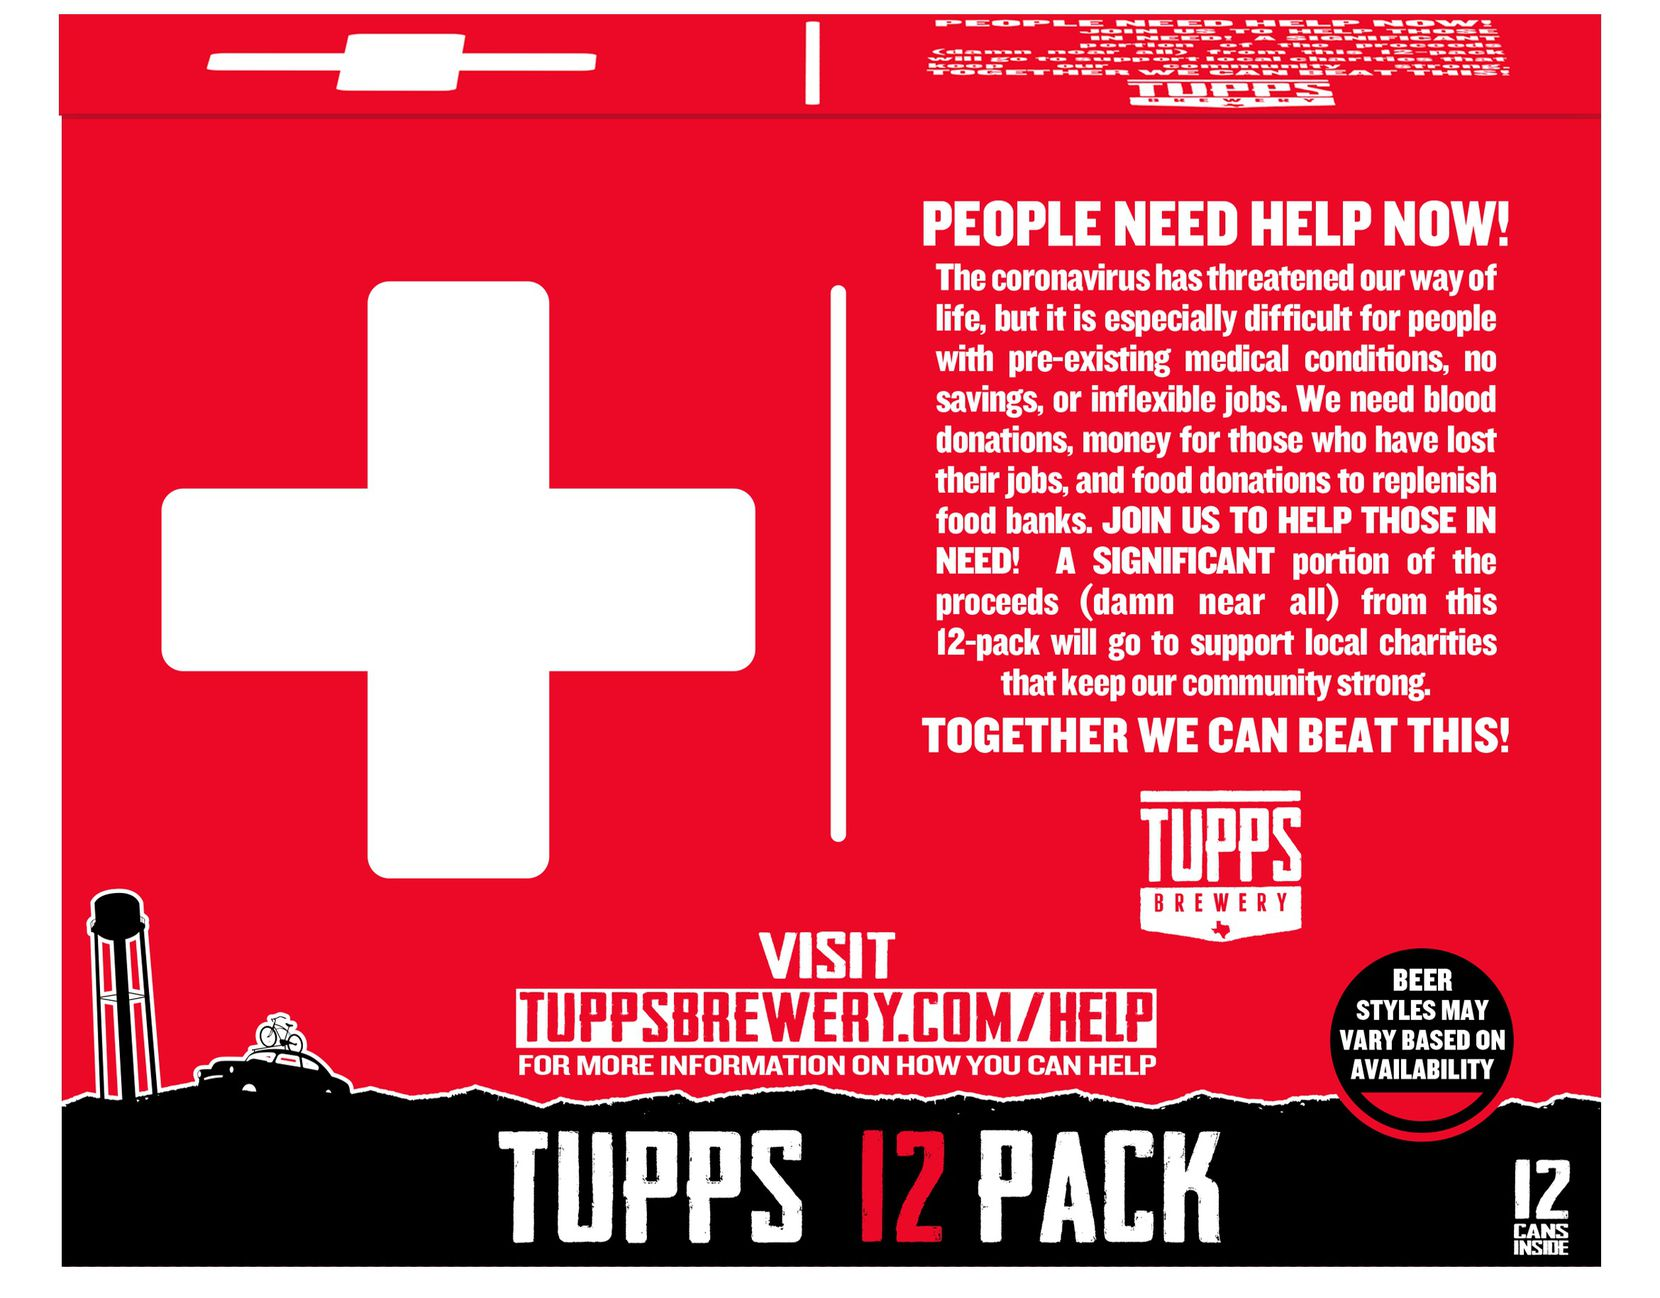 The back side of a mock-up of a 12-can variety pack from TUPPS Brewery. The McKinney beer-maker is planning to roll out the package for retail purchase and donate portions to charities helping those affected by the coronavirus pandemic.